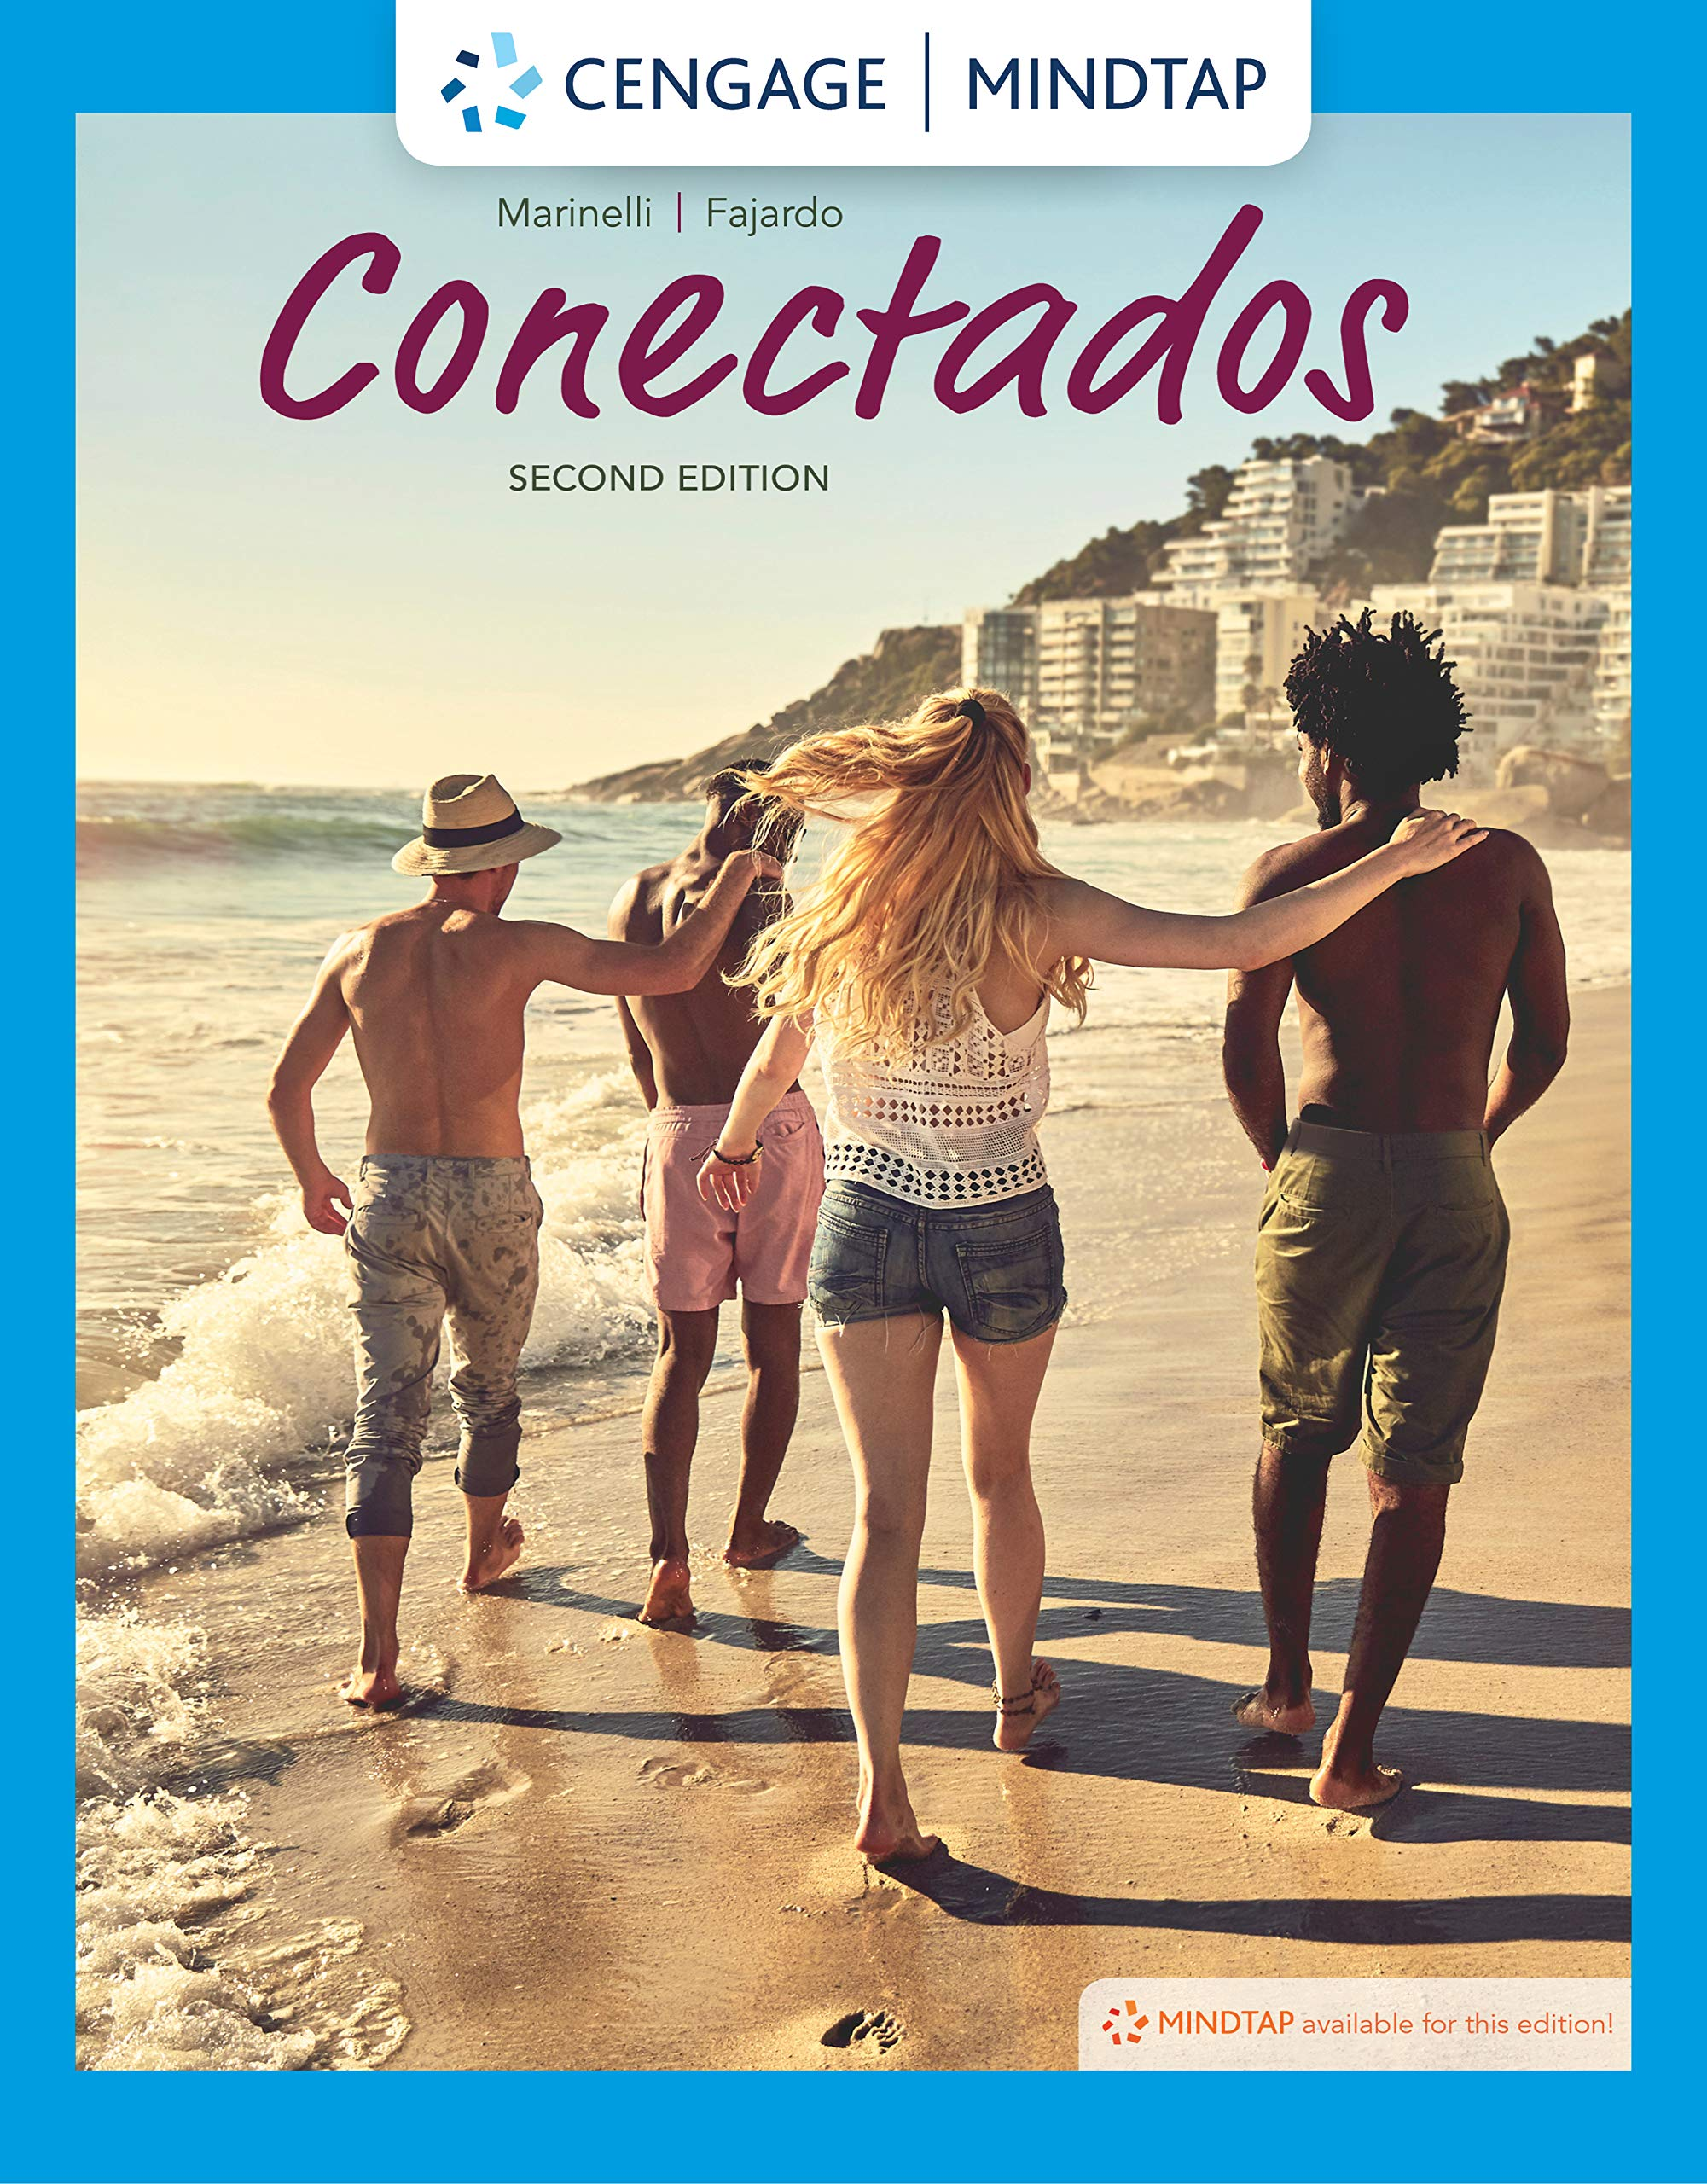 MindTap for Marinelli/Fajardo's Conectados, 2nd Edition [PC Online code] by Cengage Learning